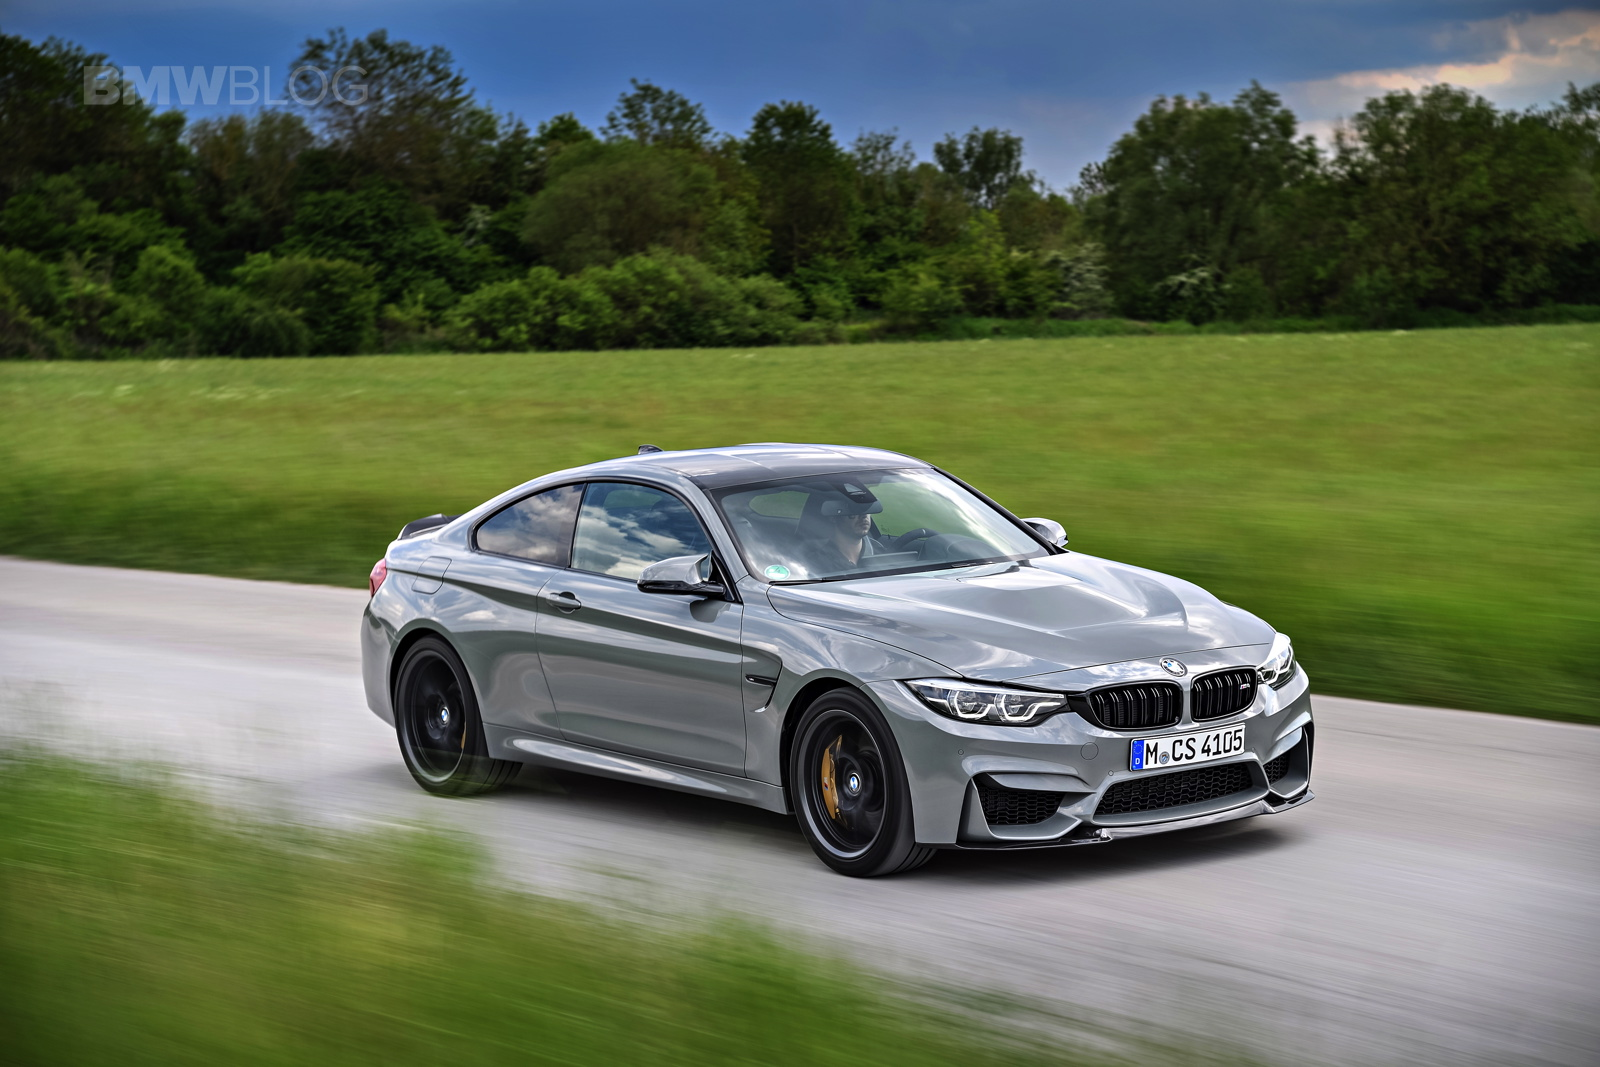 First Bmw M4 Cs Reviews Are In